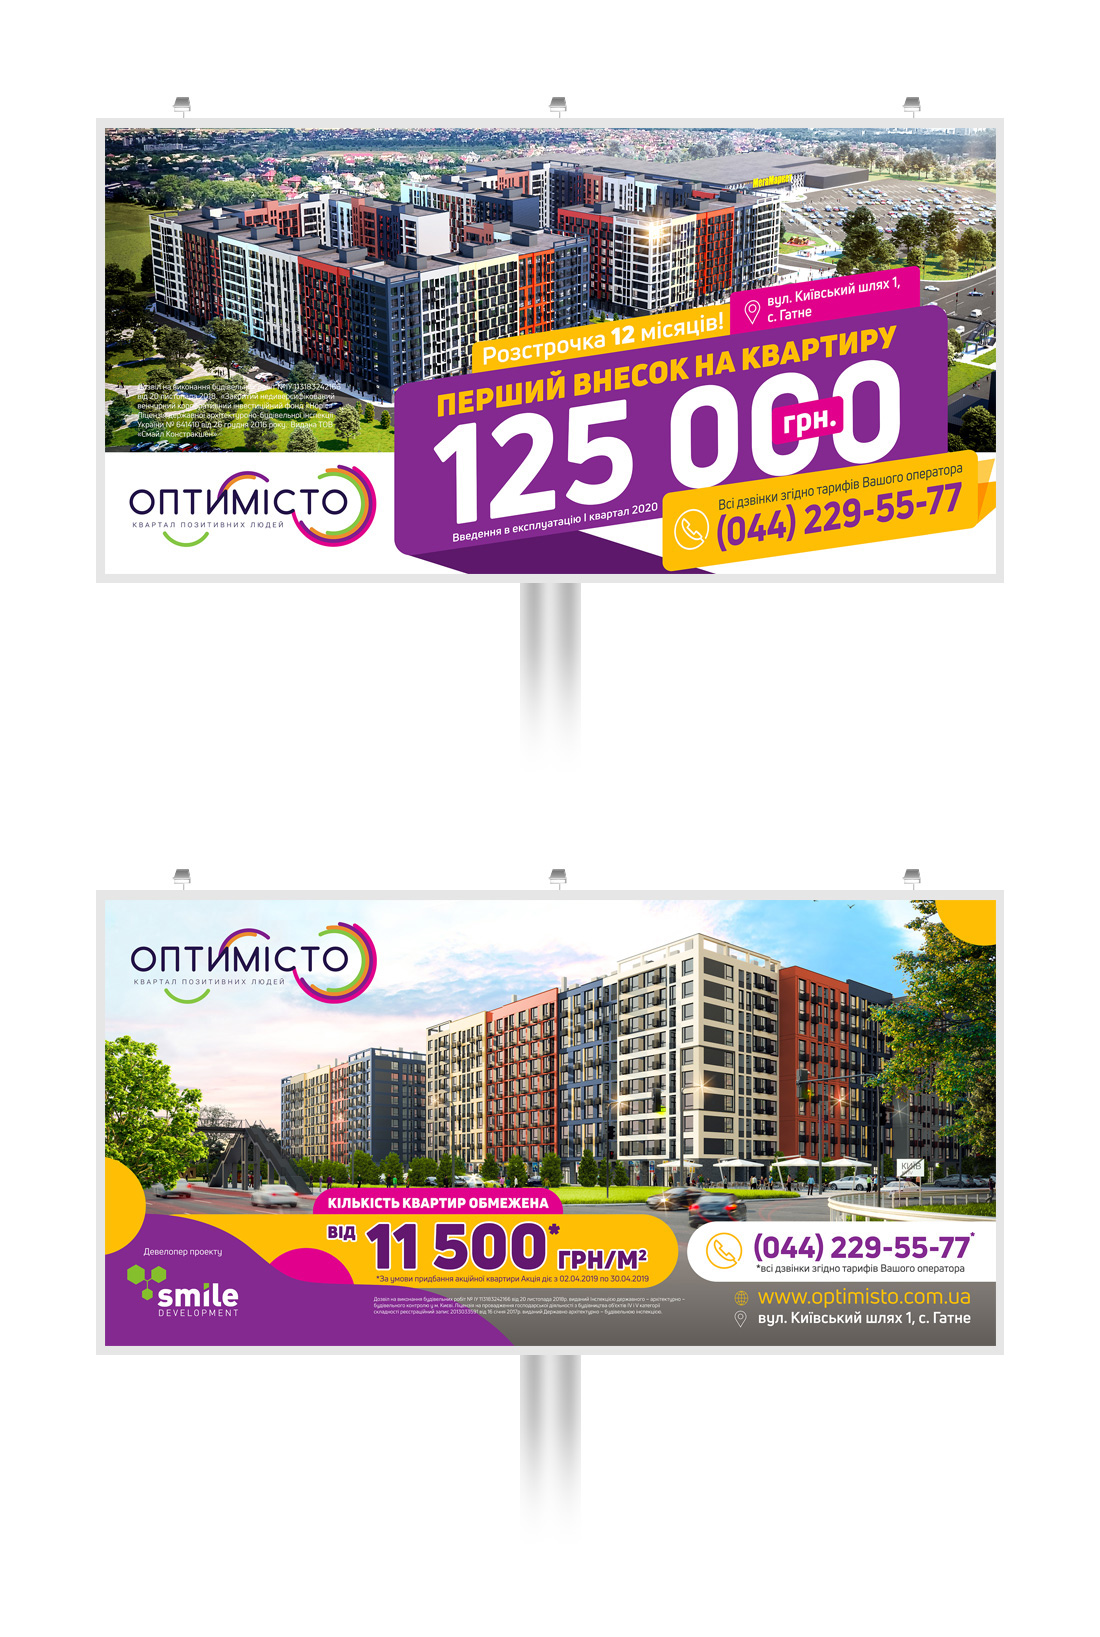 Graphic design of billboards for Optymisto